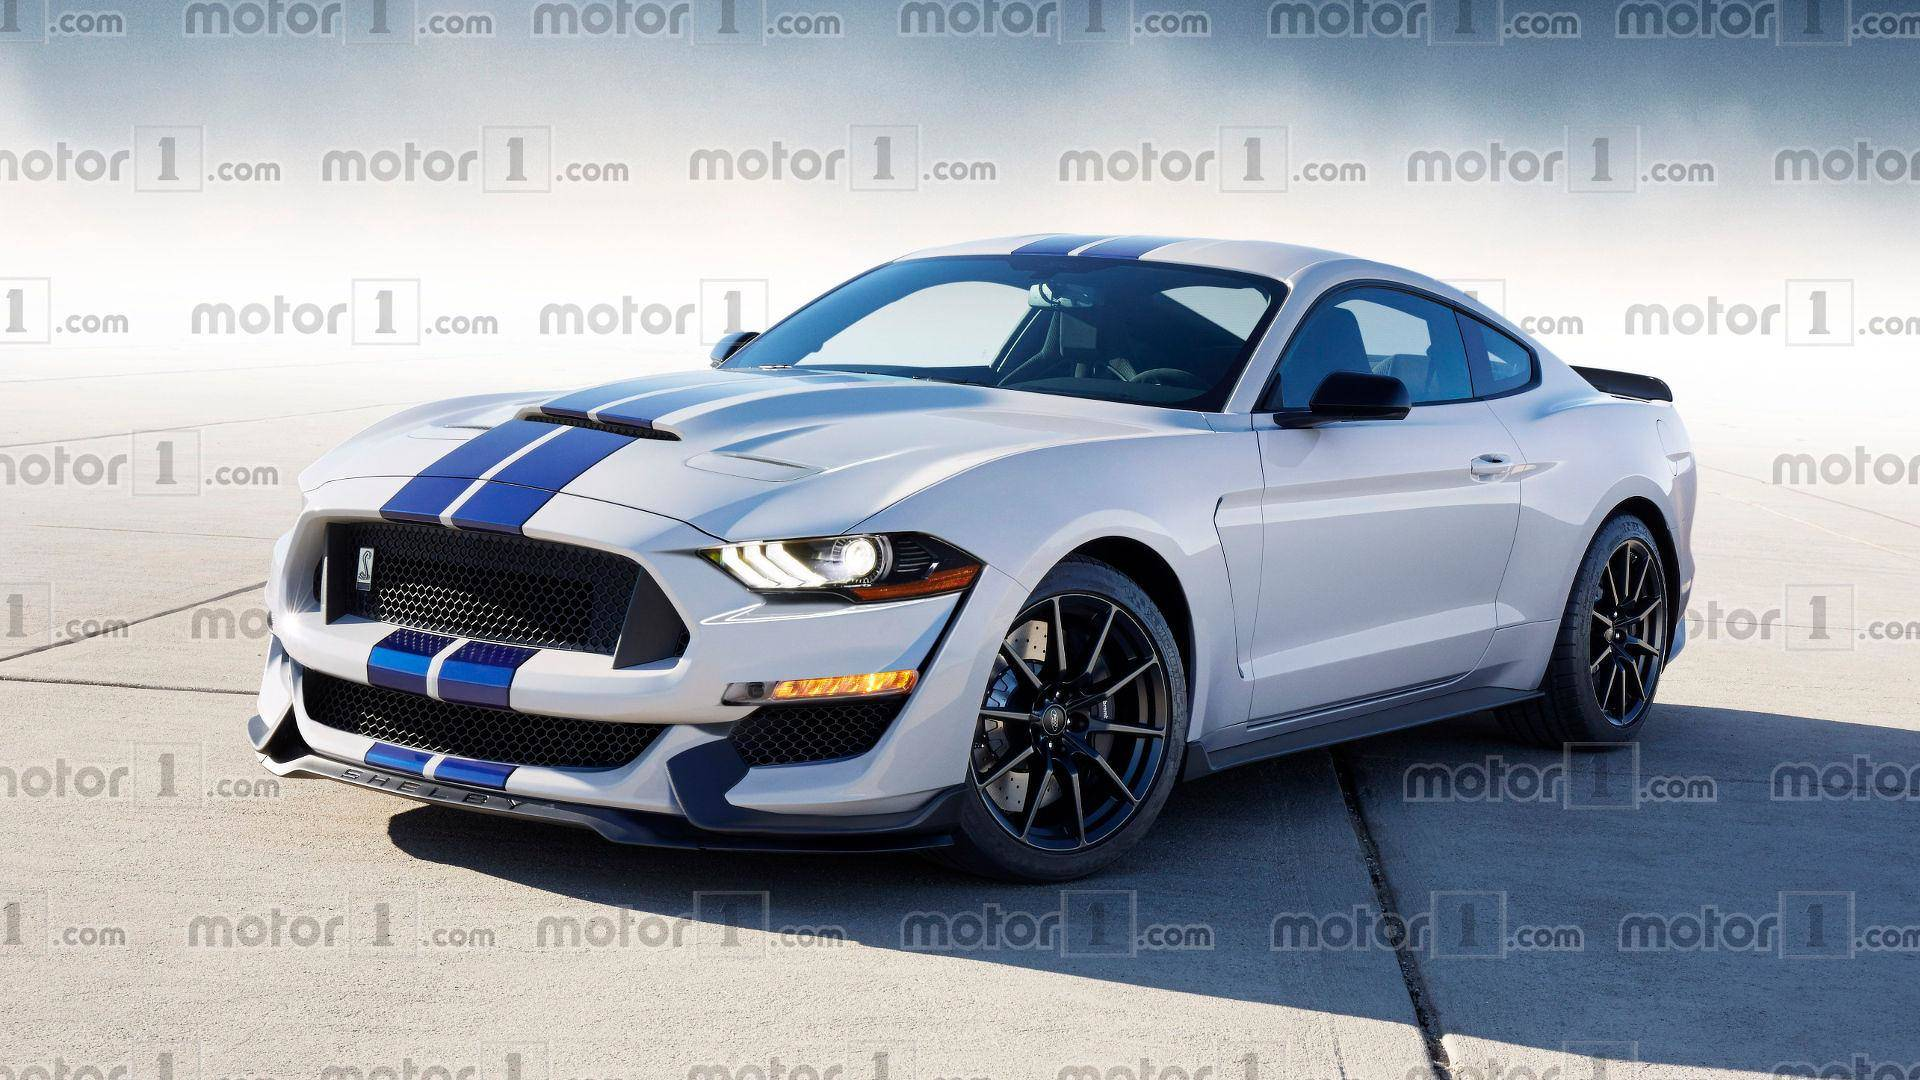 2018 Ford Mustang Shelby Gt500 Super Snake Price >> 2019 Ford Mustang Super Snake Price | 2018, 2019, 2020 Ford Cars